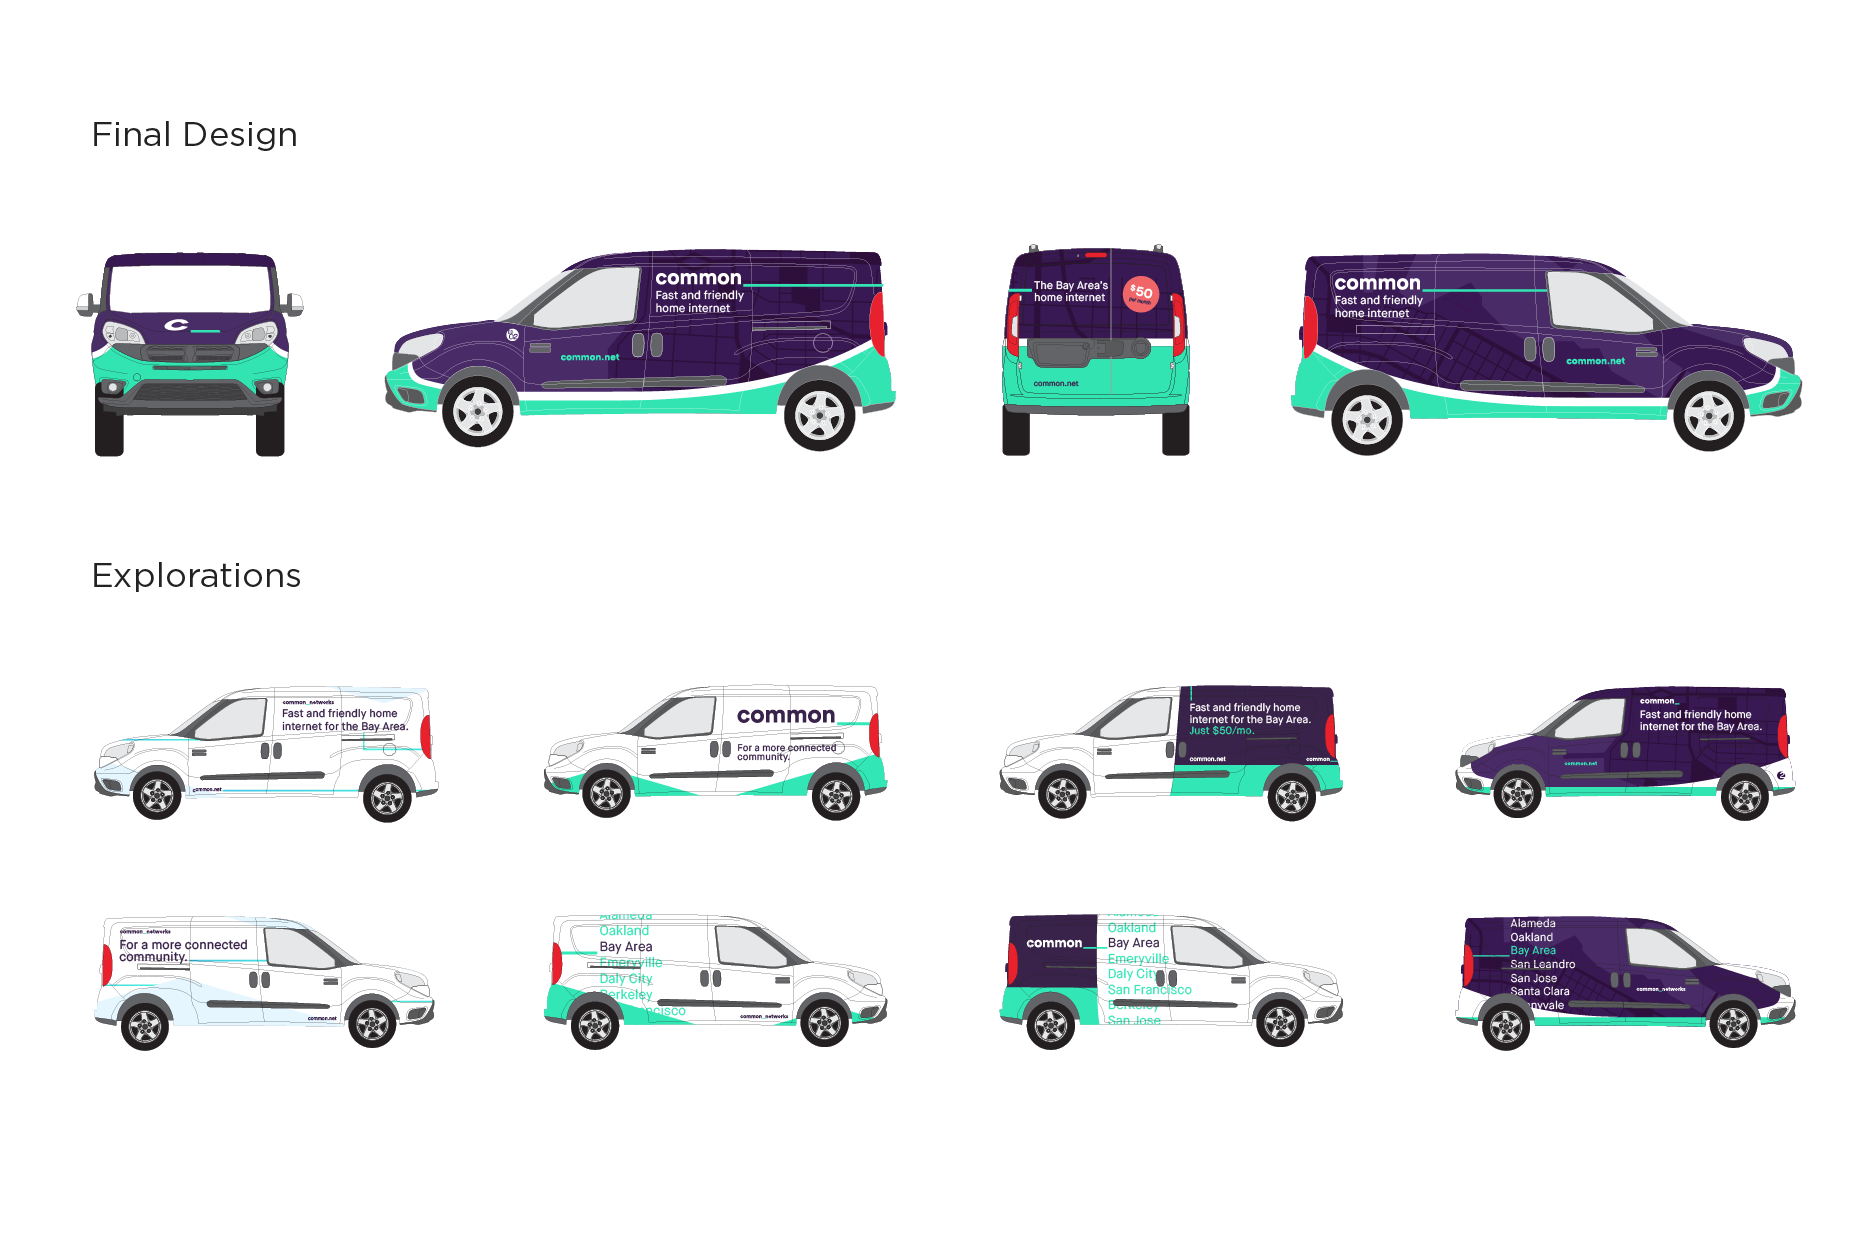 Final van wrap designs followed by array of earlier designs and iterations.